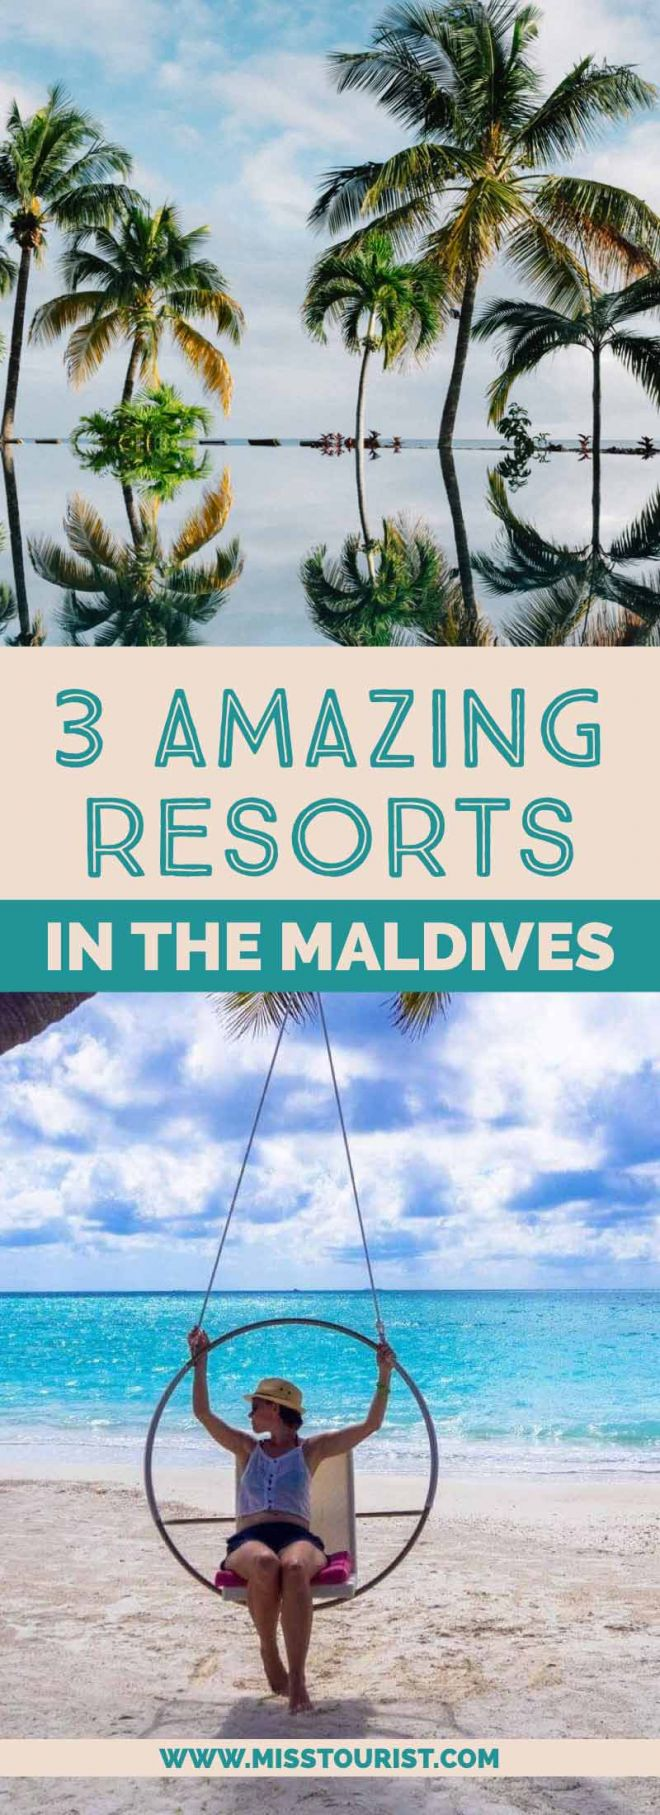 3 Amazing Resorts In The Maldives pin it 1